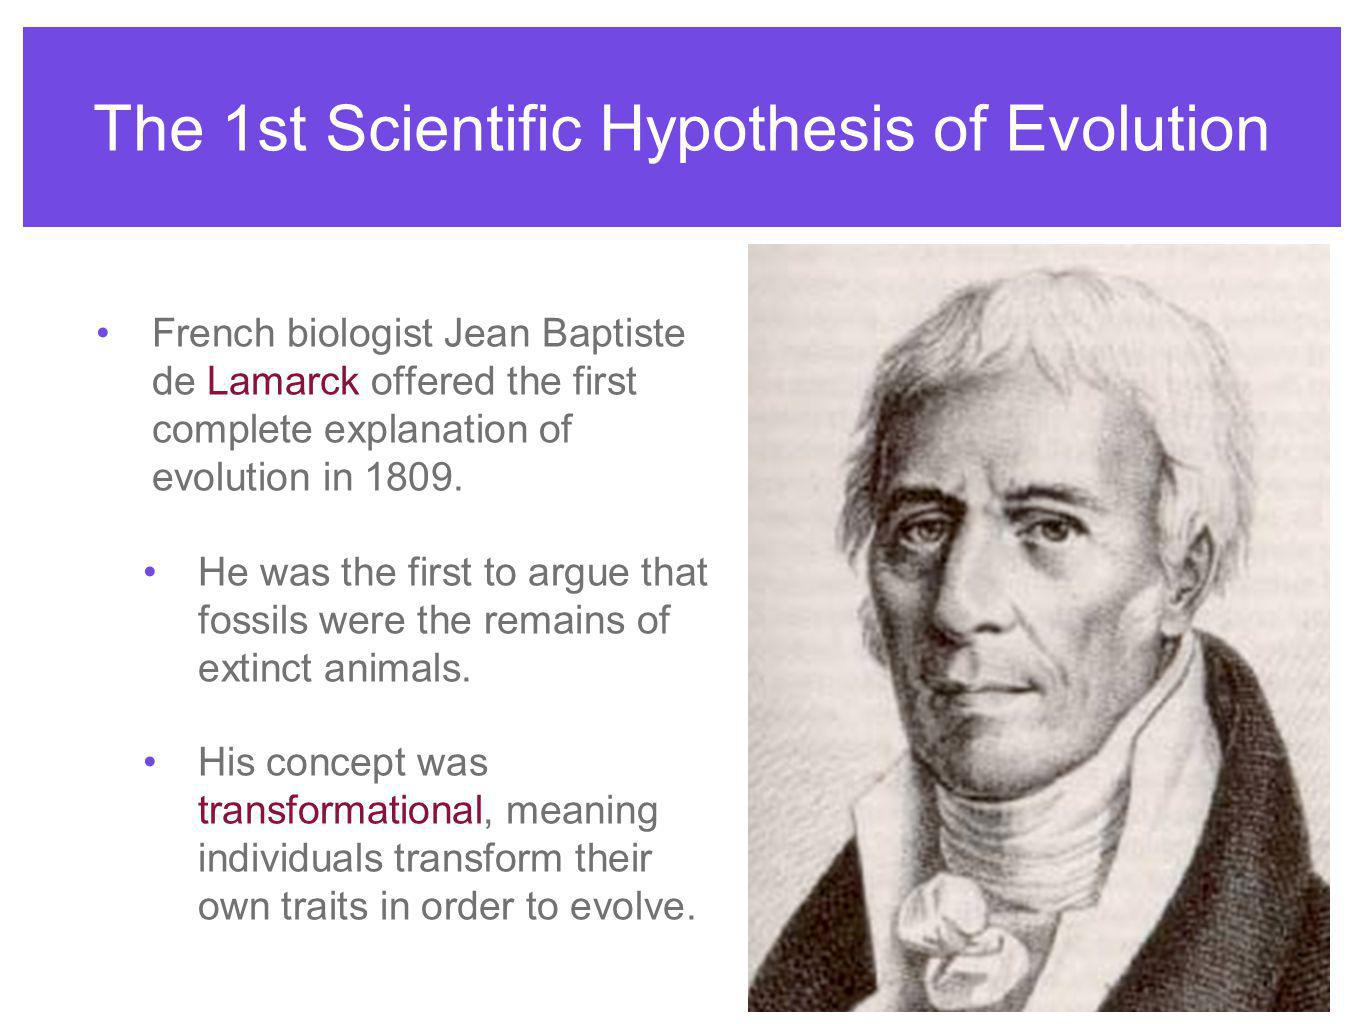 The 1st Scientific Hypothesis of Evolution